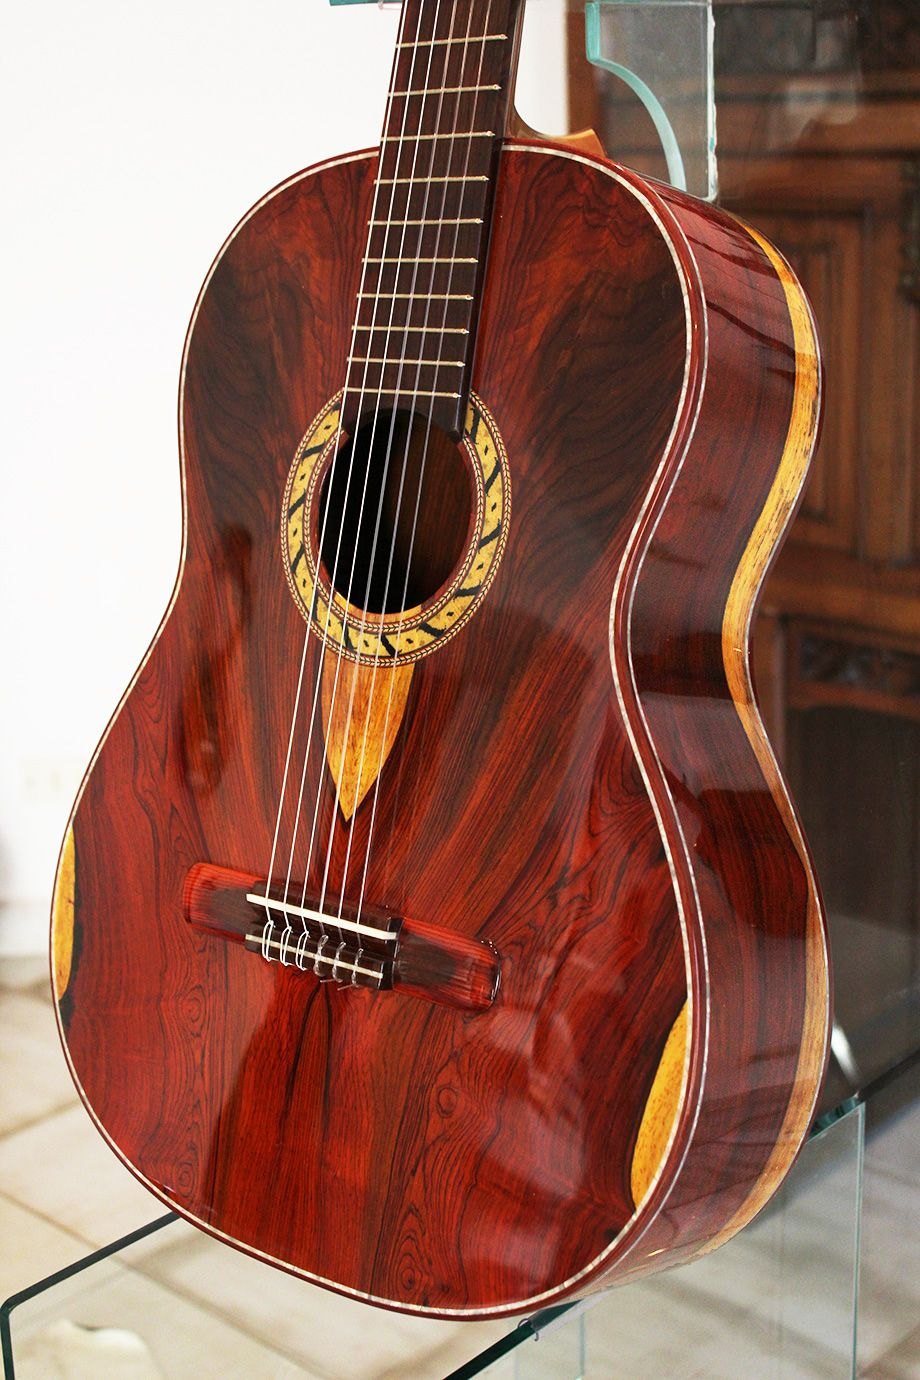 cocobolo b s cocobolo top hauser concert classical guitar cool guitars construcci n de. Black Bedroom Furniture Sets. Home Design Ideas